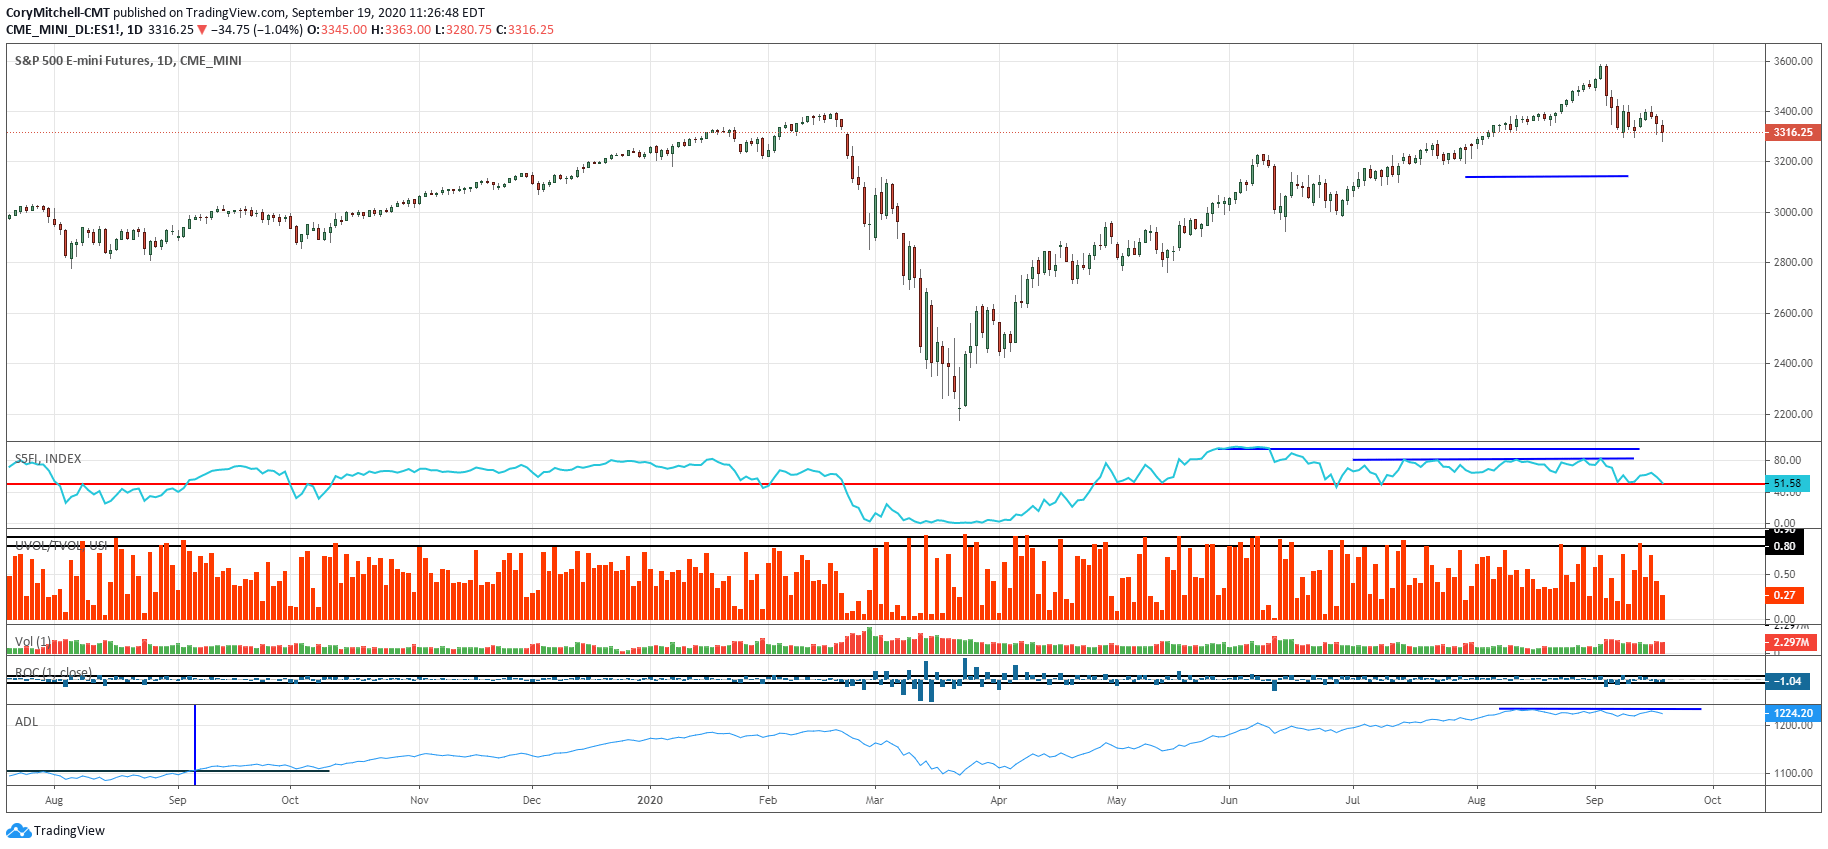 stock market chart of S&P 500 futures